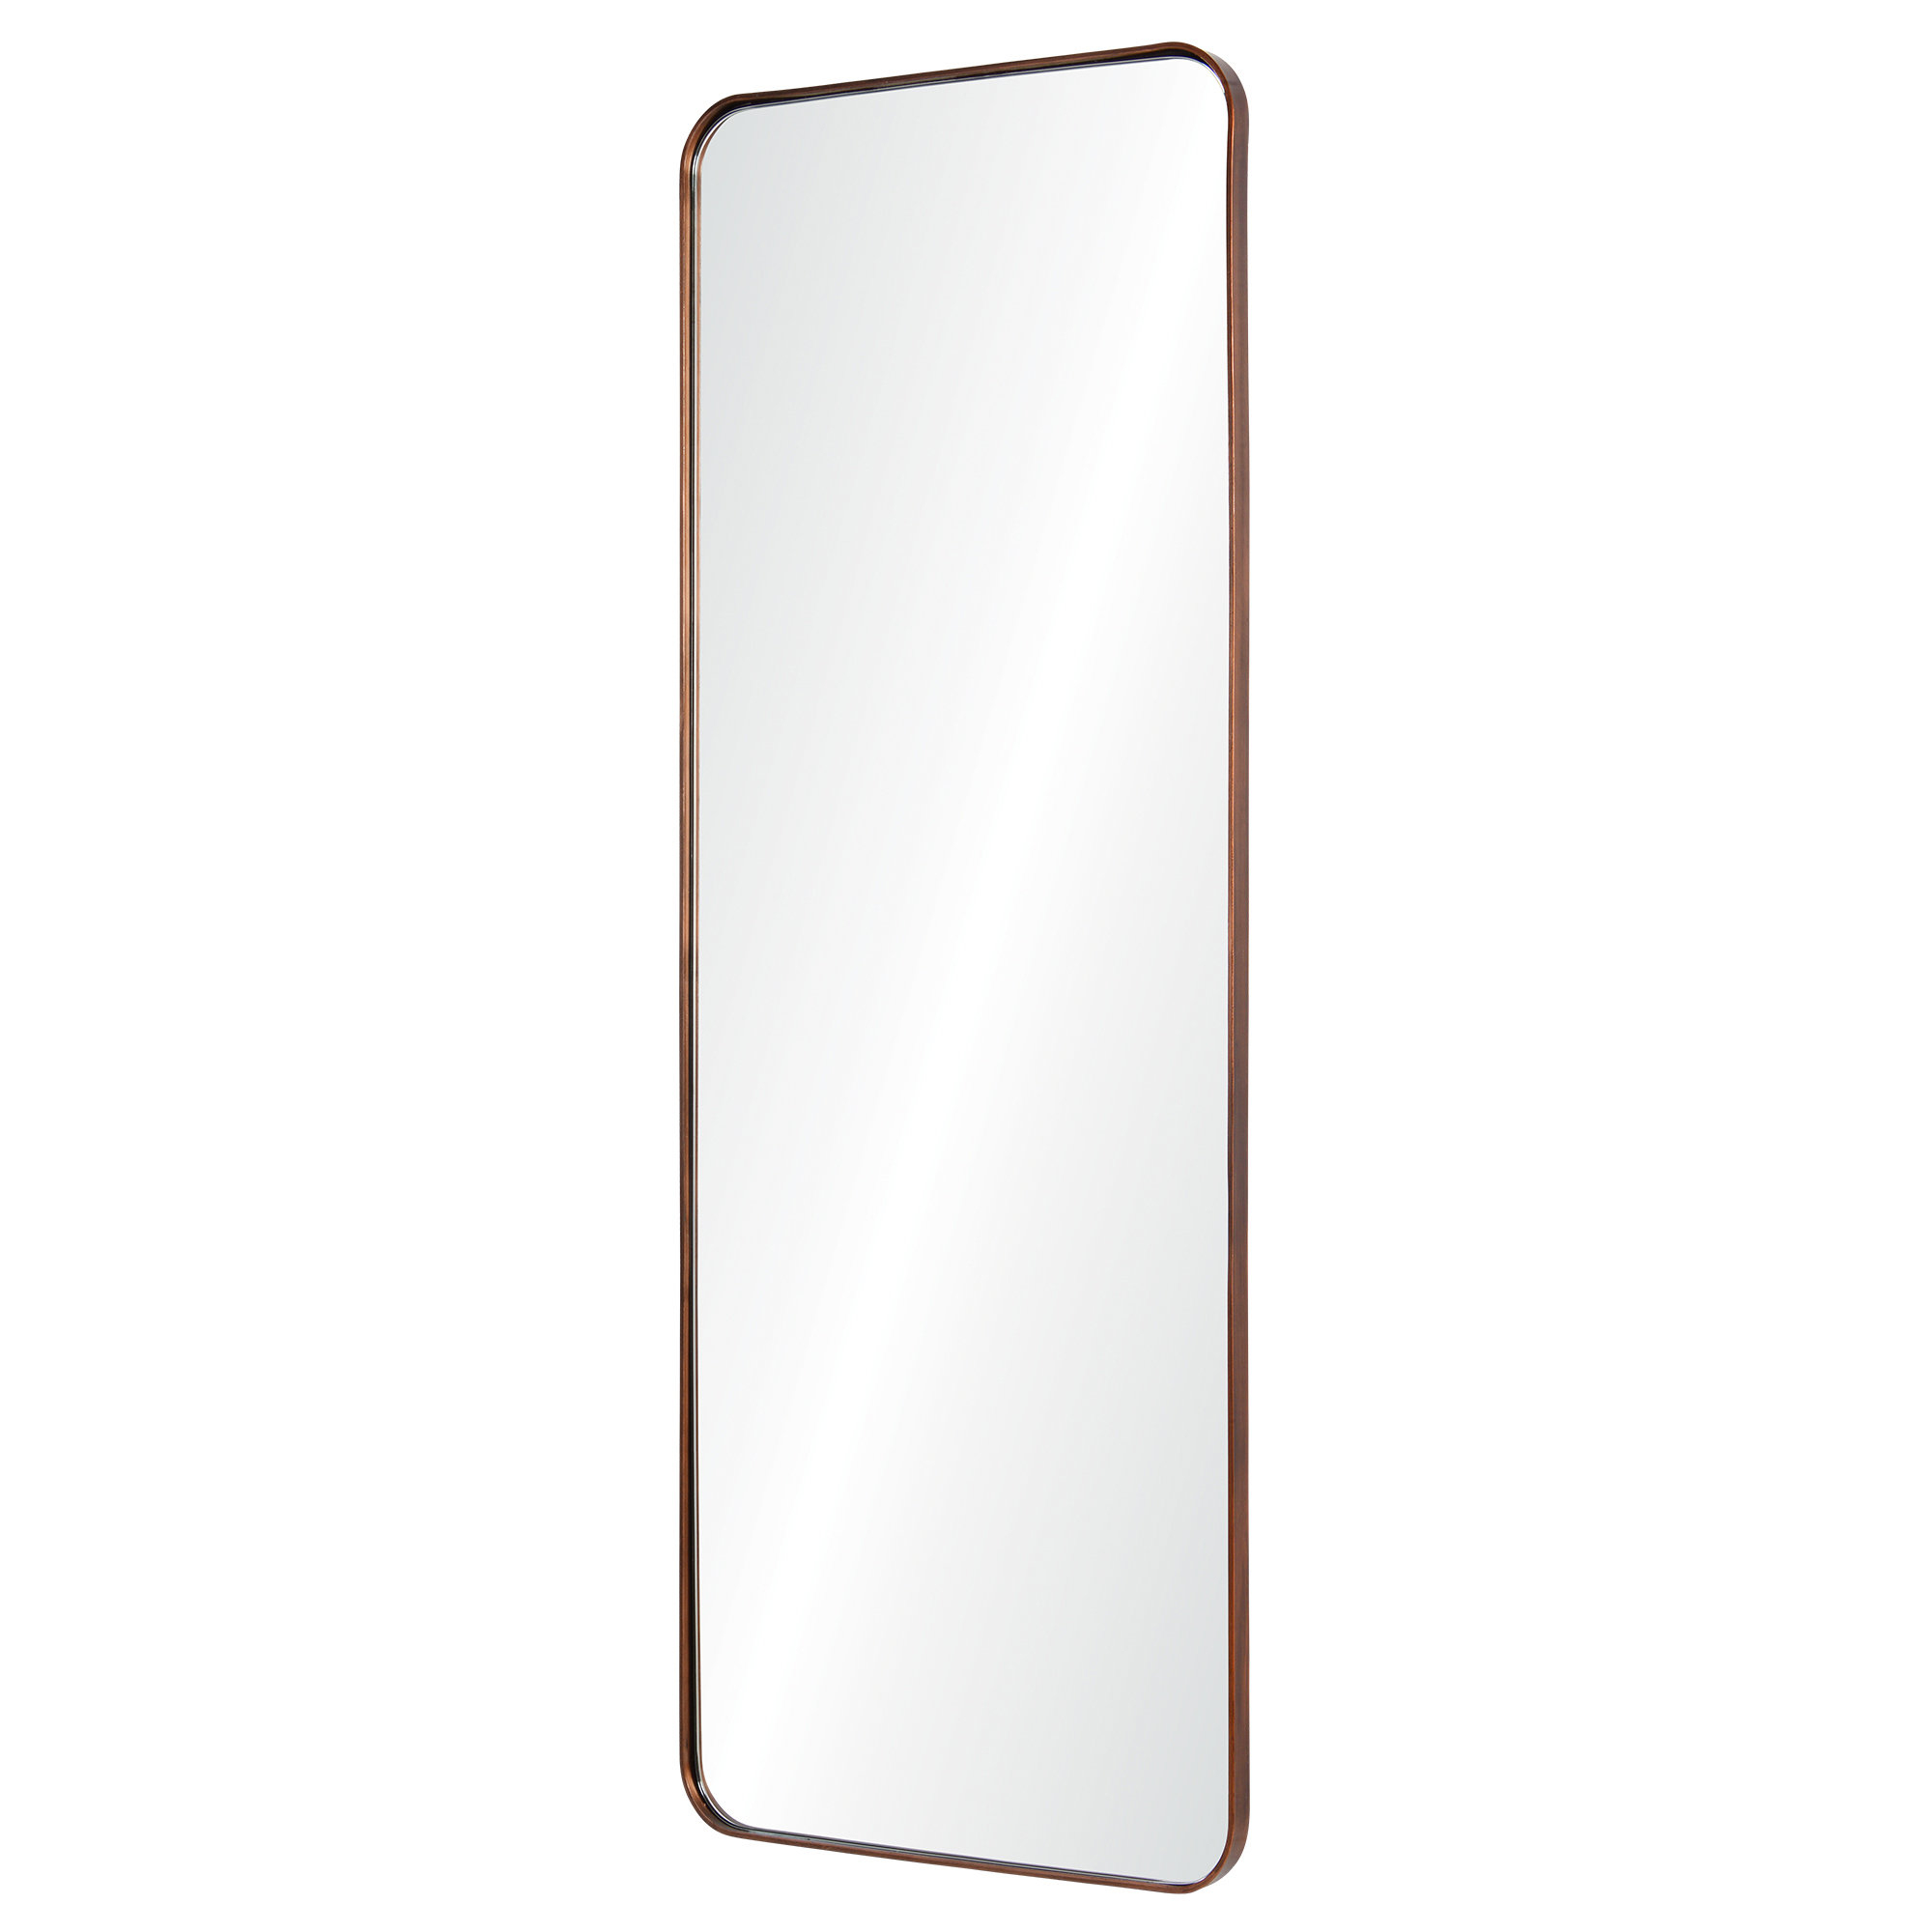 Carita Modern & Contemporary Accent Wall Mirror With Regard To Kayden Accent Mirrors (View 4 of 30)